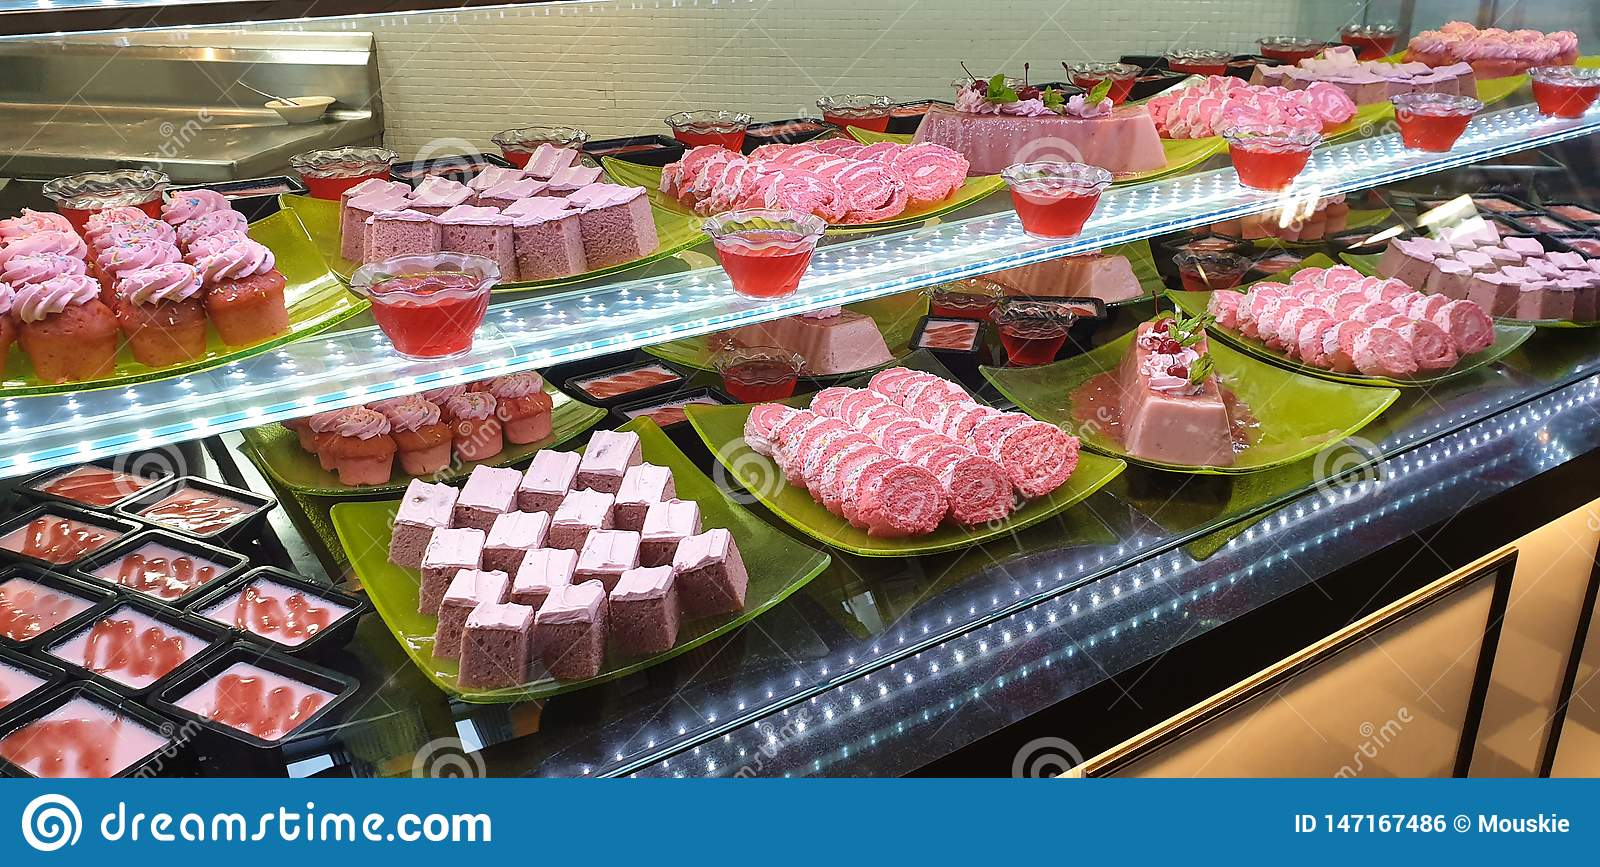 Display of pink cakes